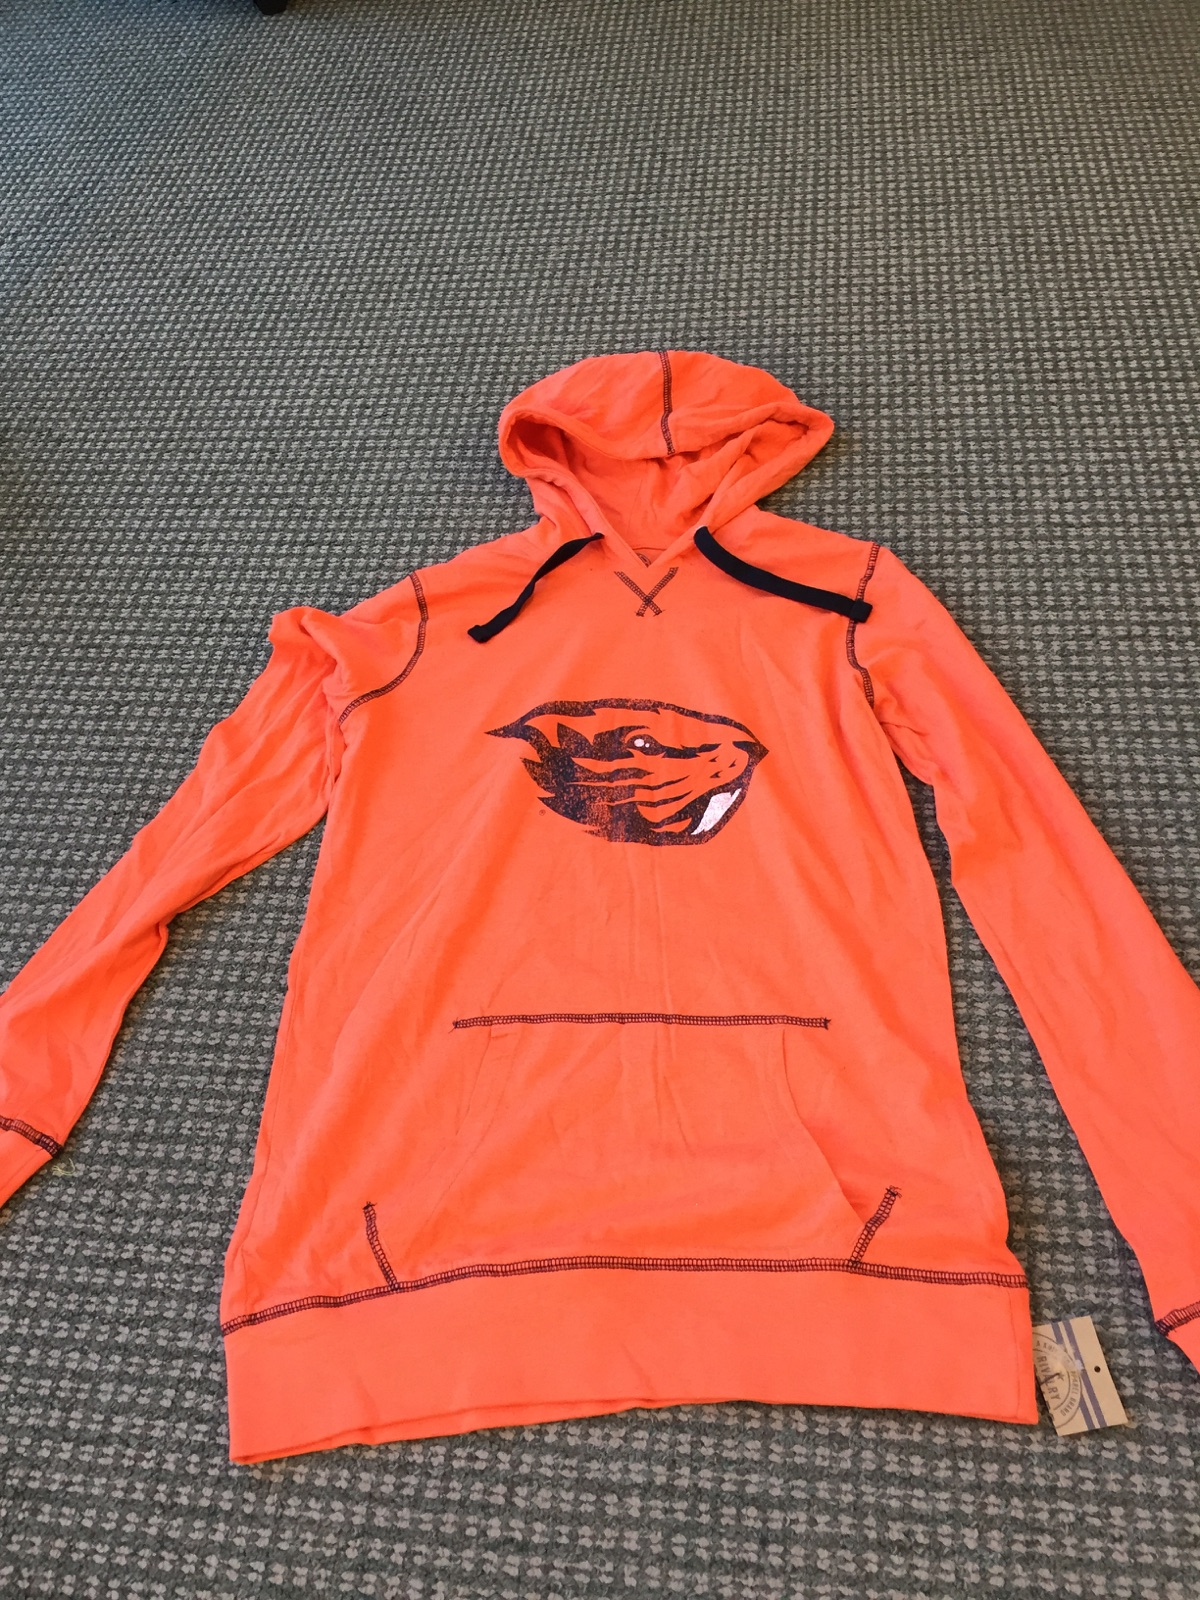 Oregon State Hoodie Lightweight Size Medium